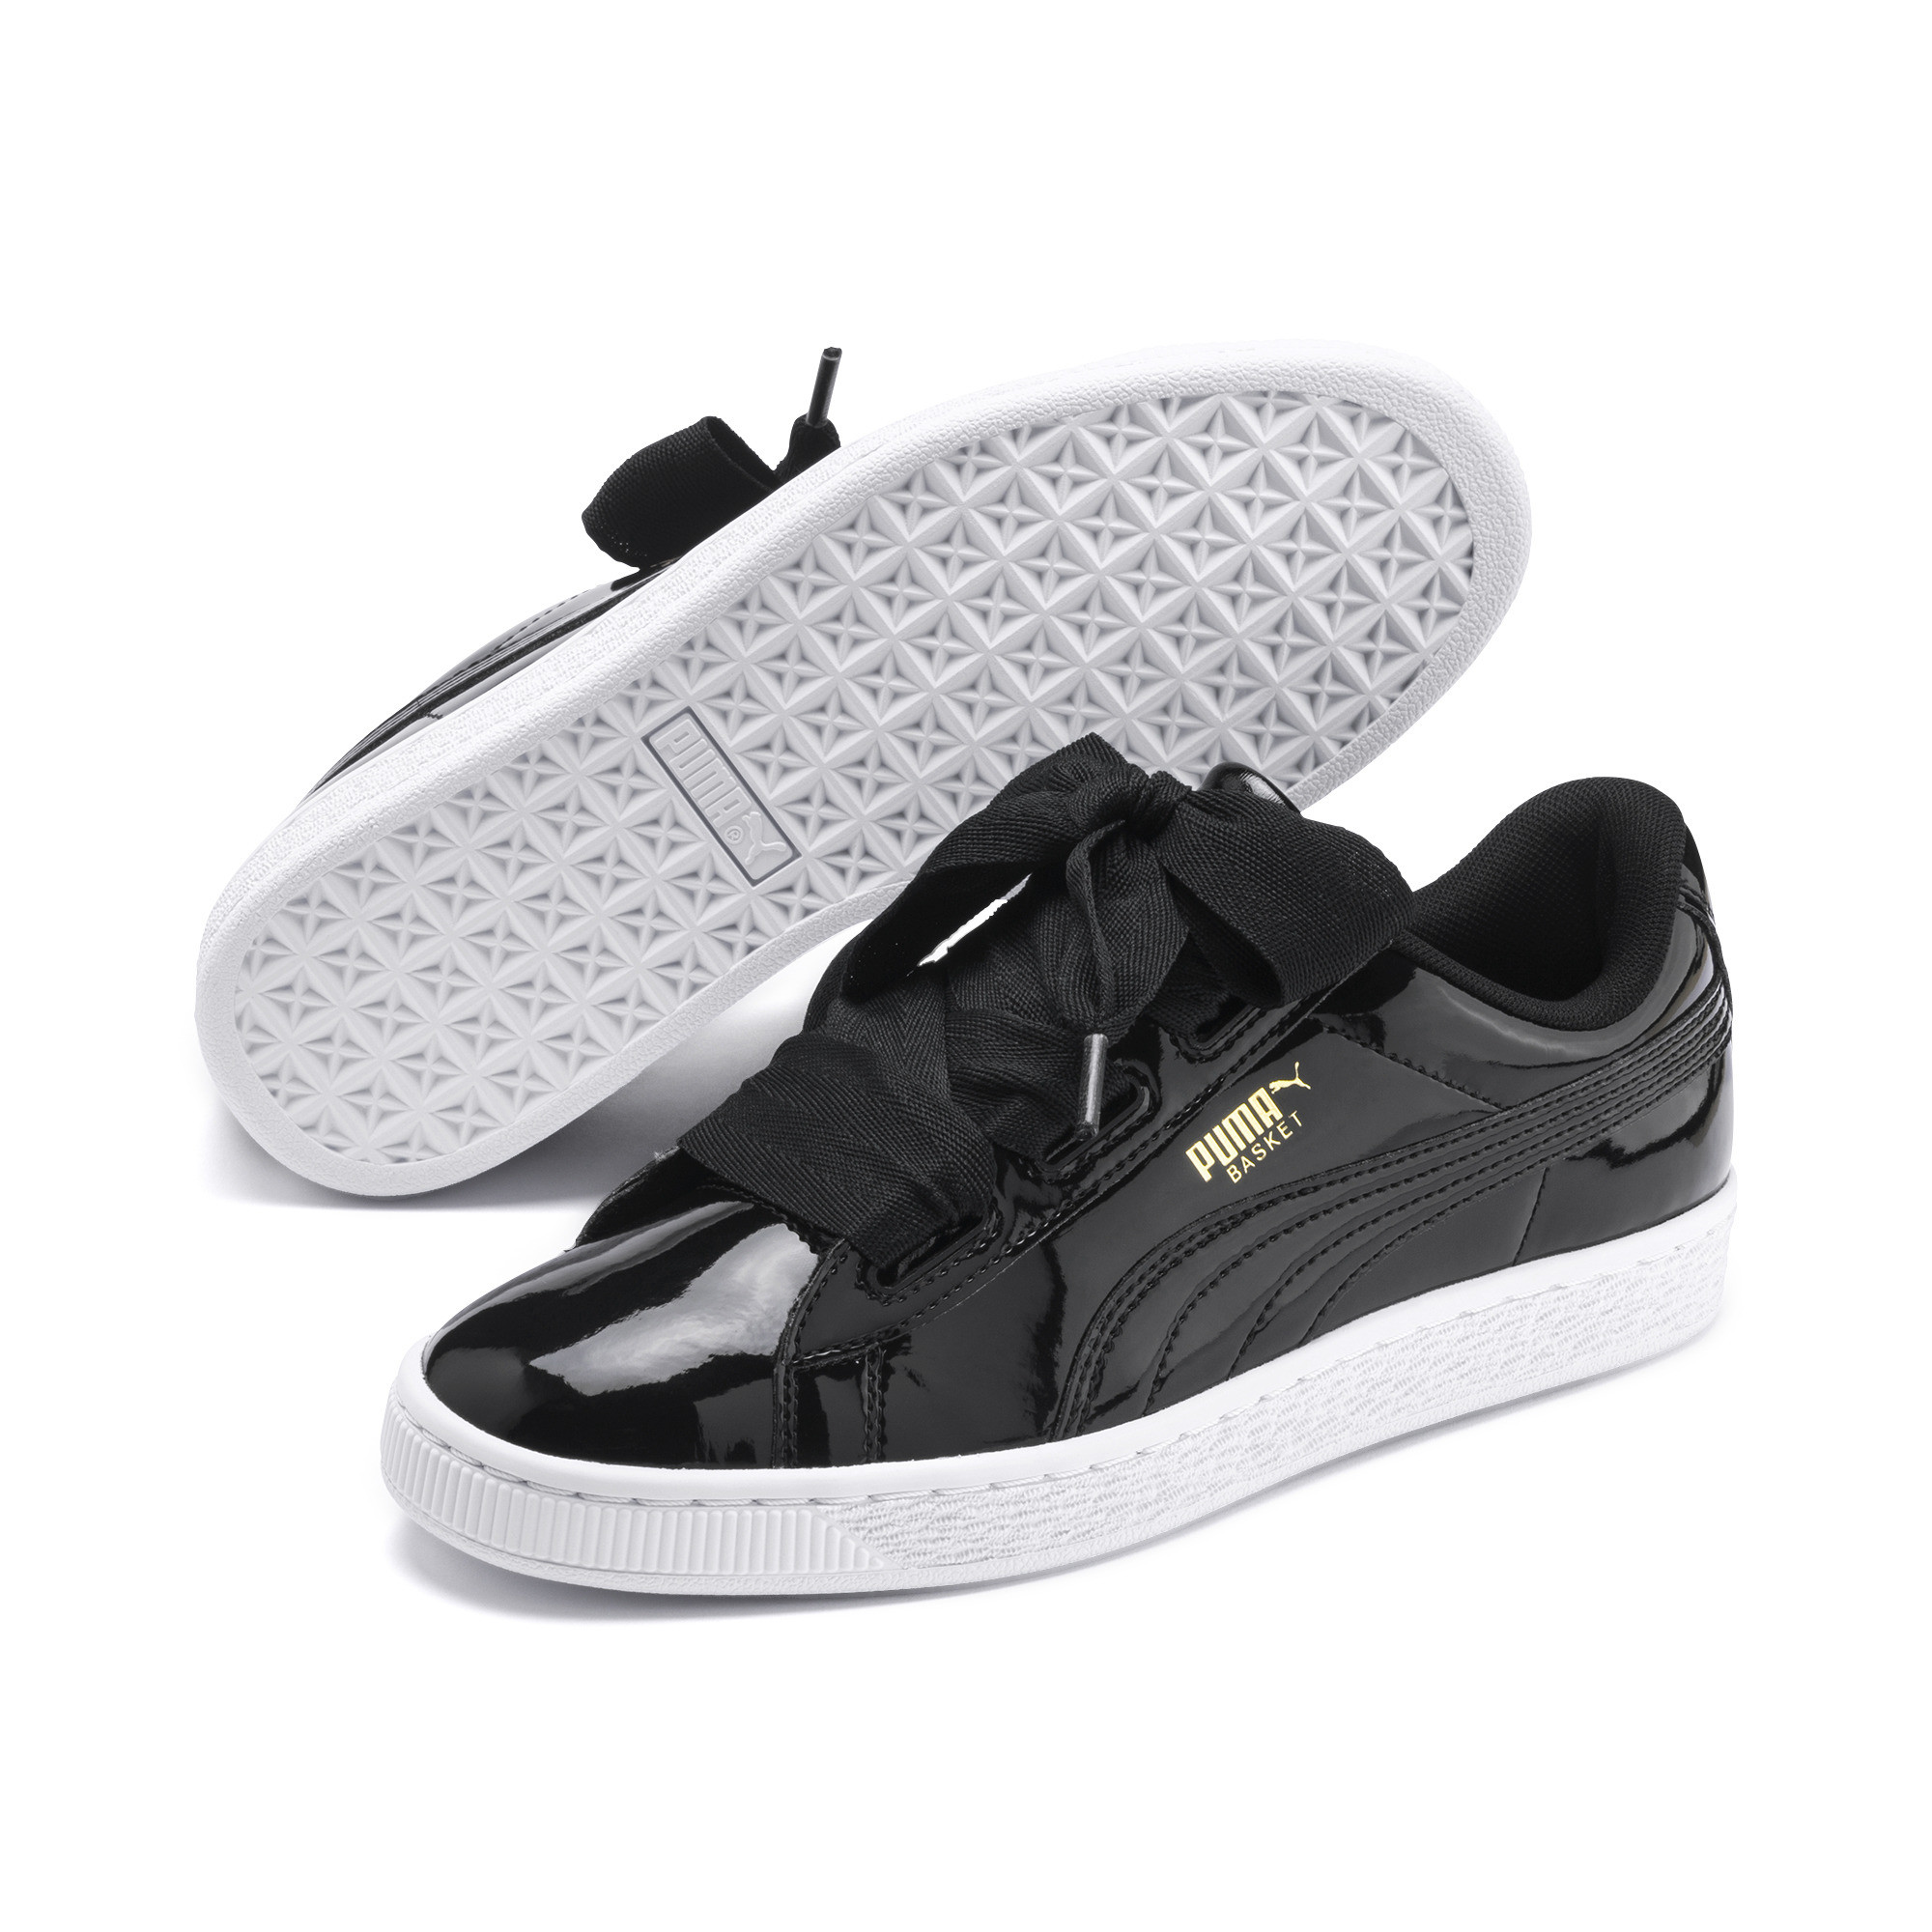 "Puma ""Basket Heart Patent"" Sneakers"